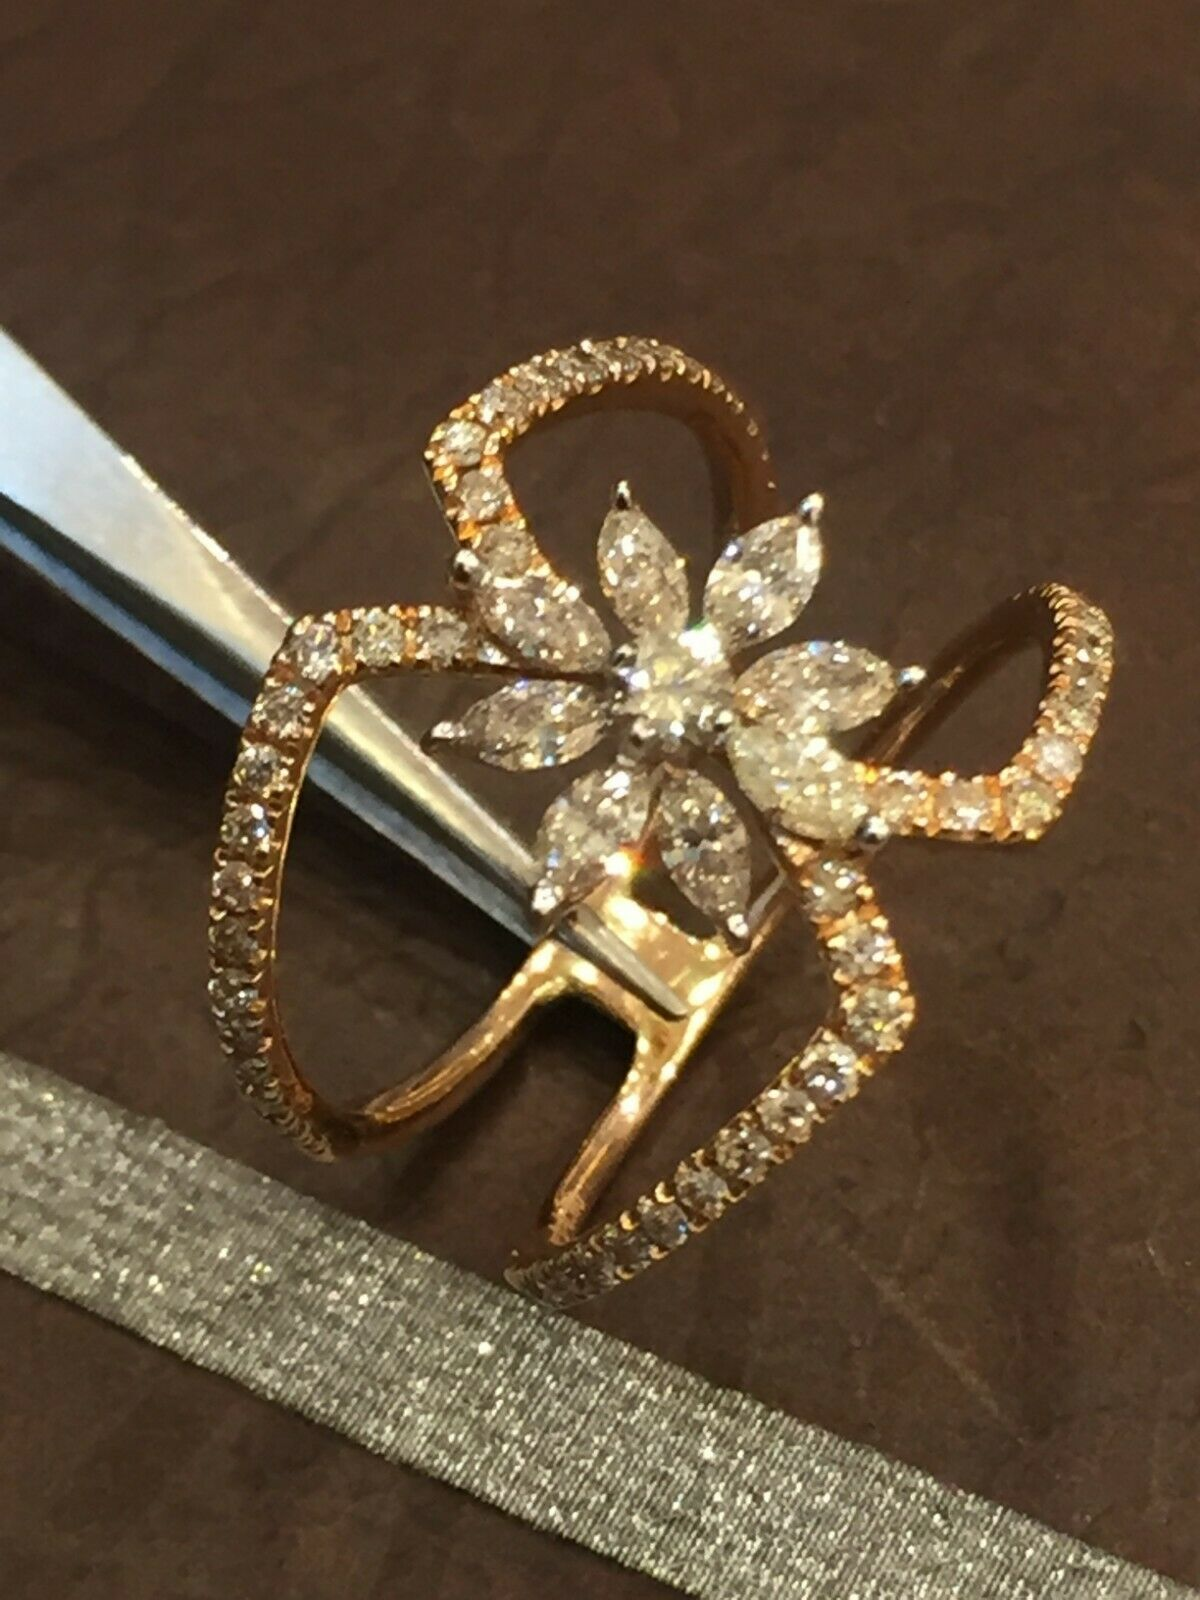 0.80 Cts Round Marquise Cut Pave Diamonds Engagement Ring In Hallmark 14K gold